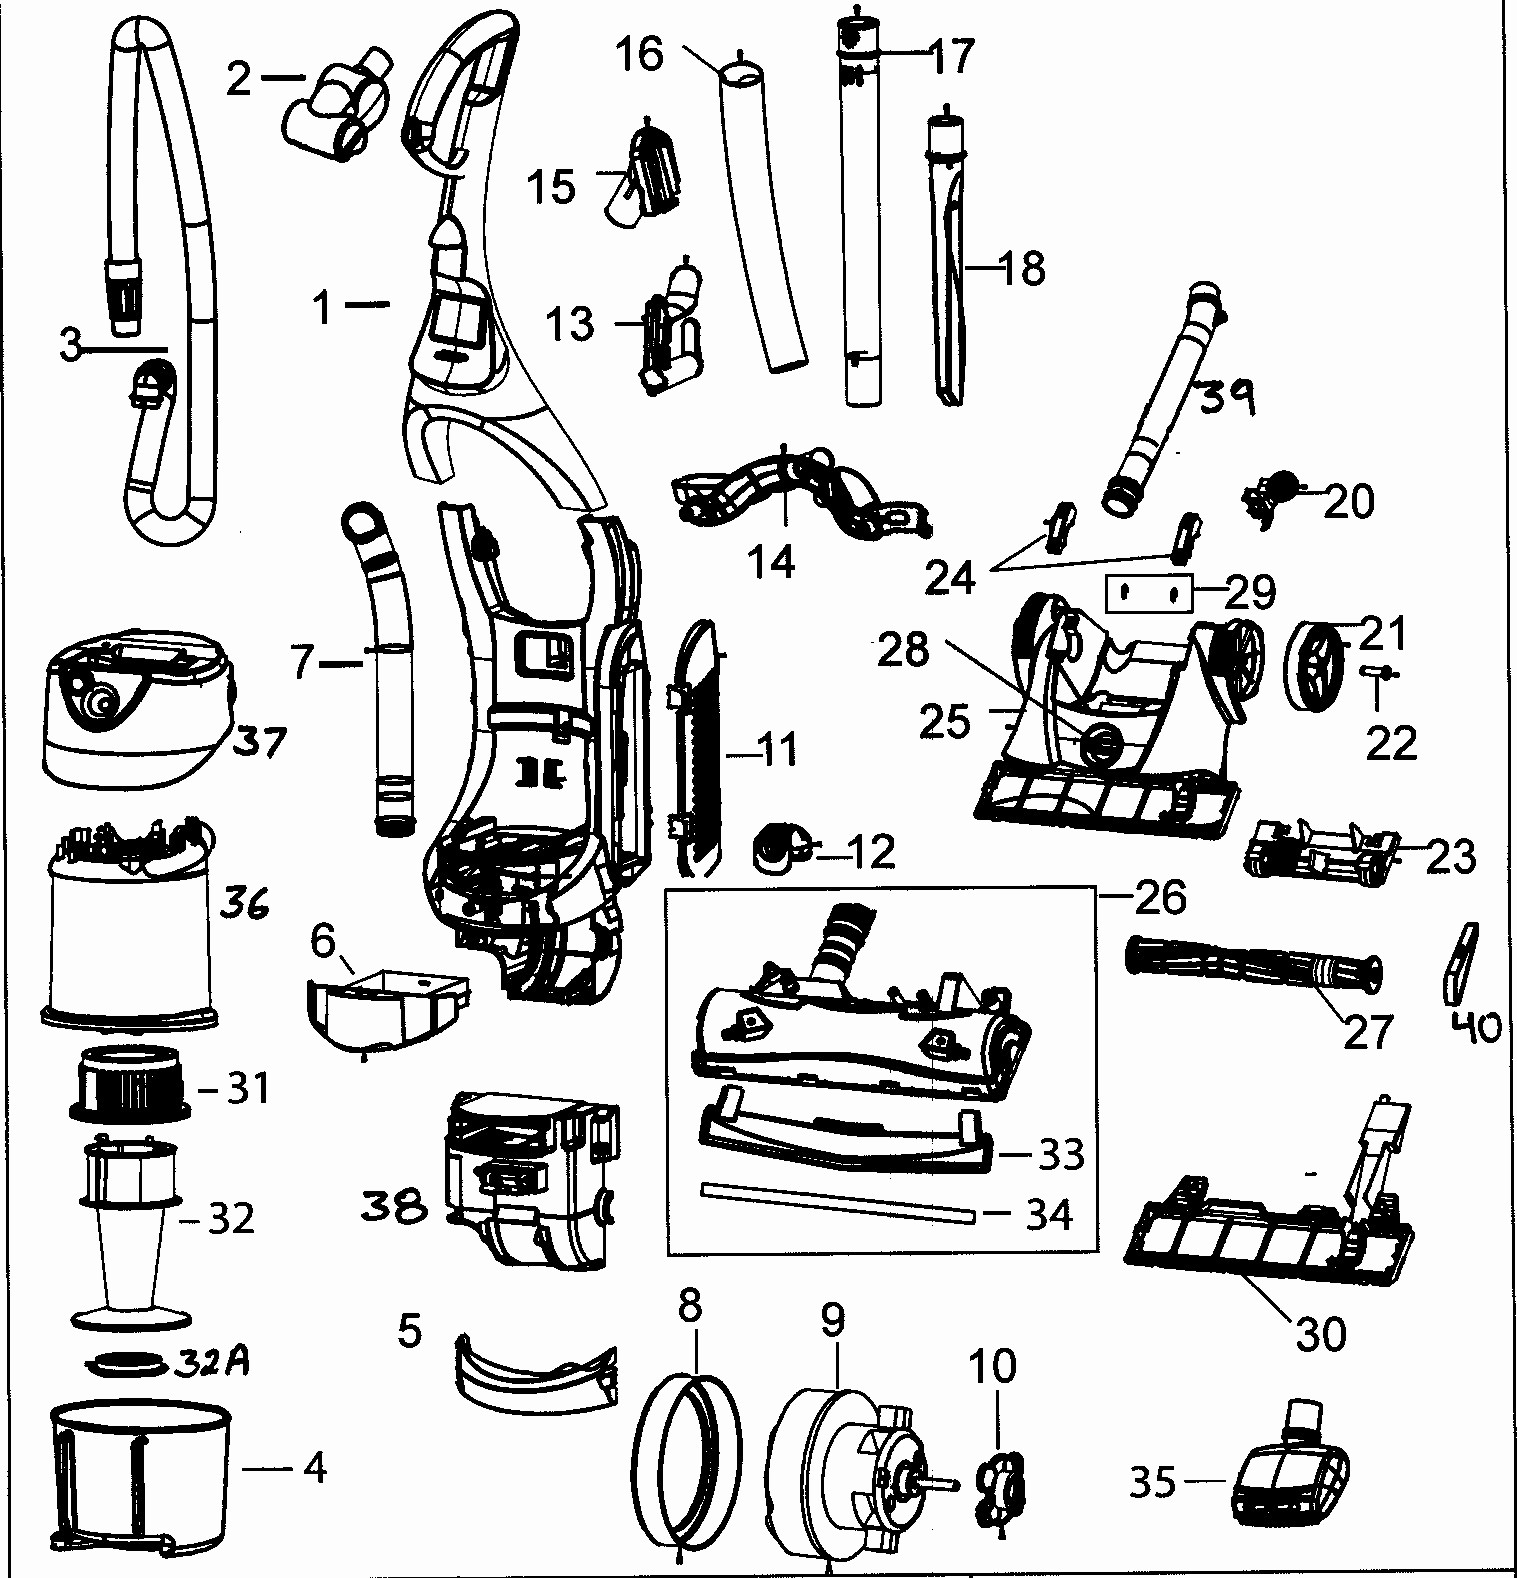 Bissell Proheat 2x Parts Diagram 50 Awesome Rug Doctor Repair Manual 50 S Of Bissell Proheat 2x Parts Diagram